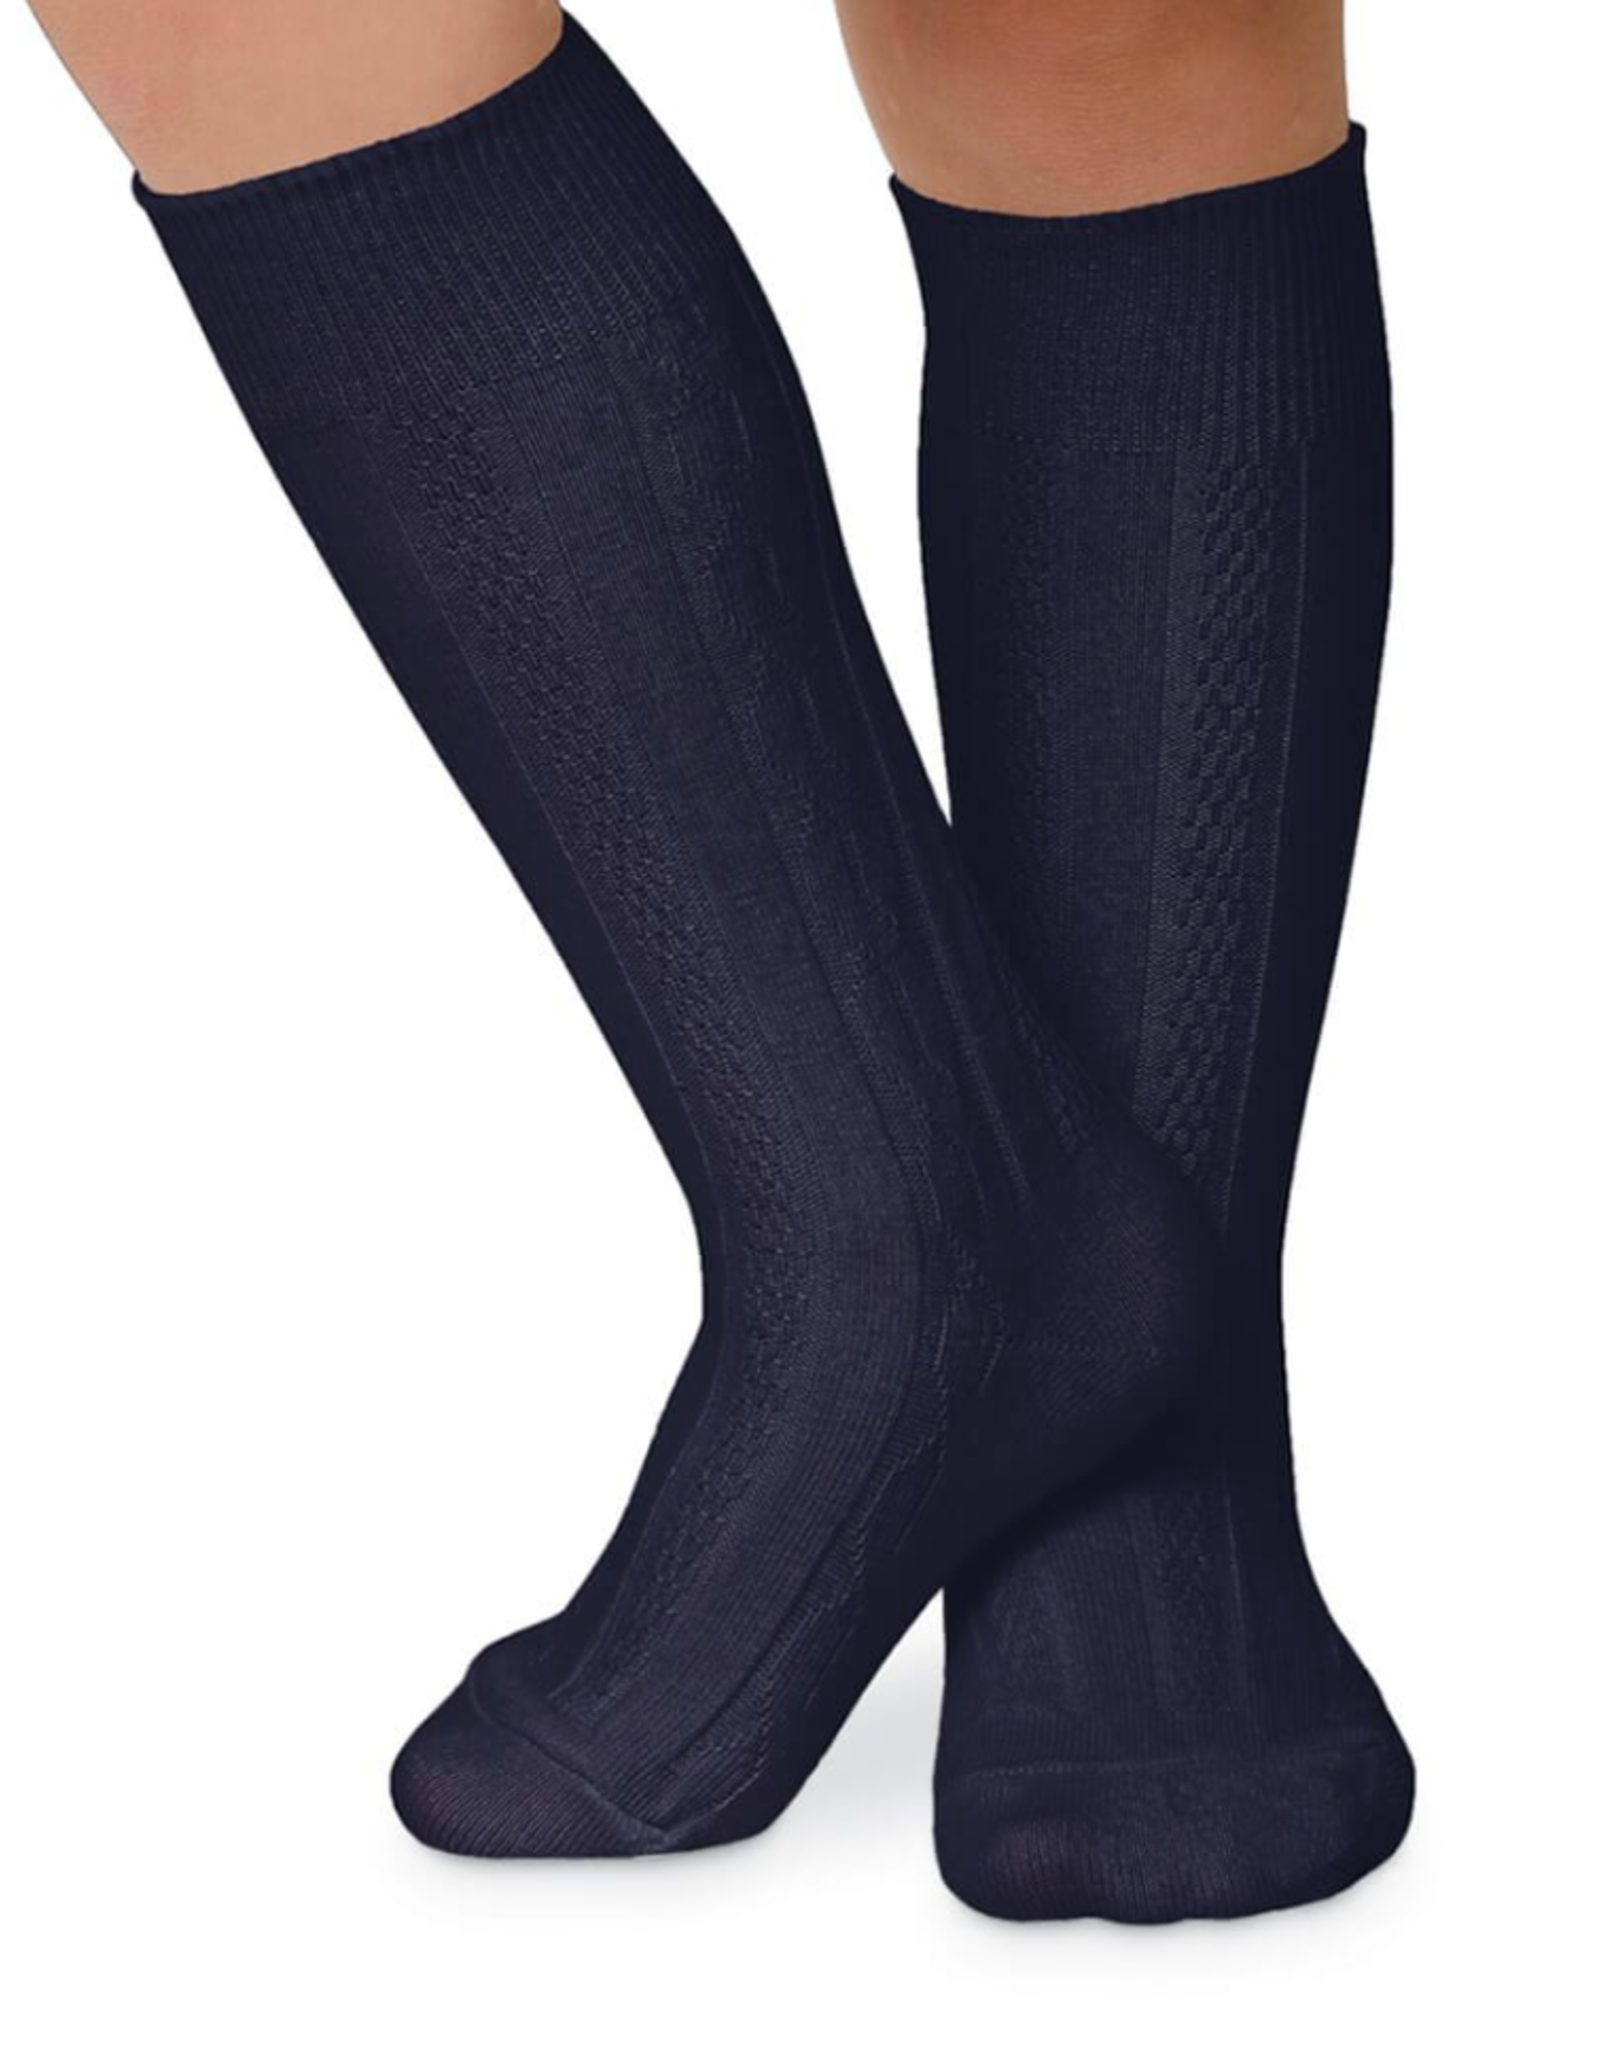 Jefferies Socks Navy Cable Knit Knee High 1625